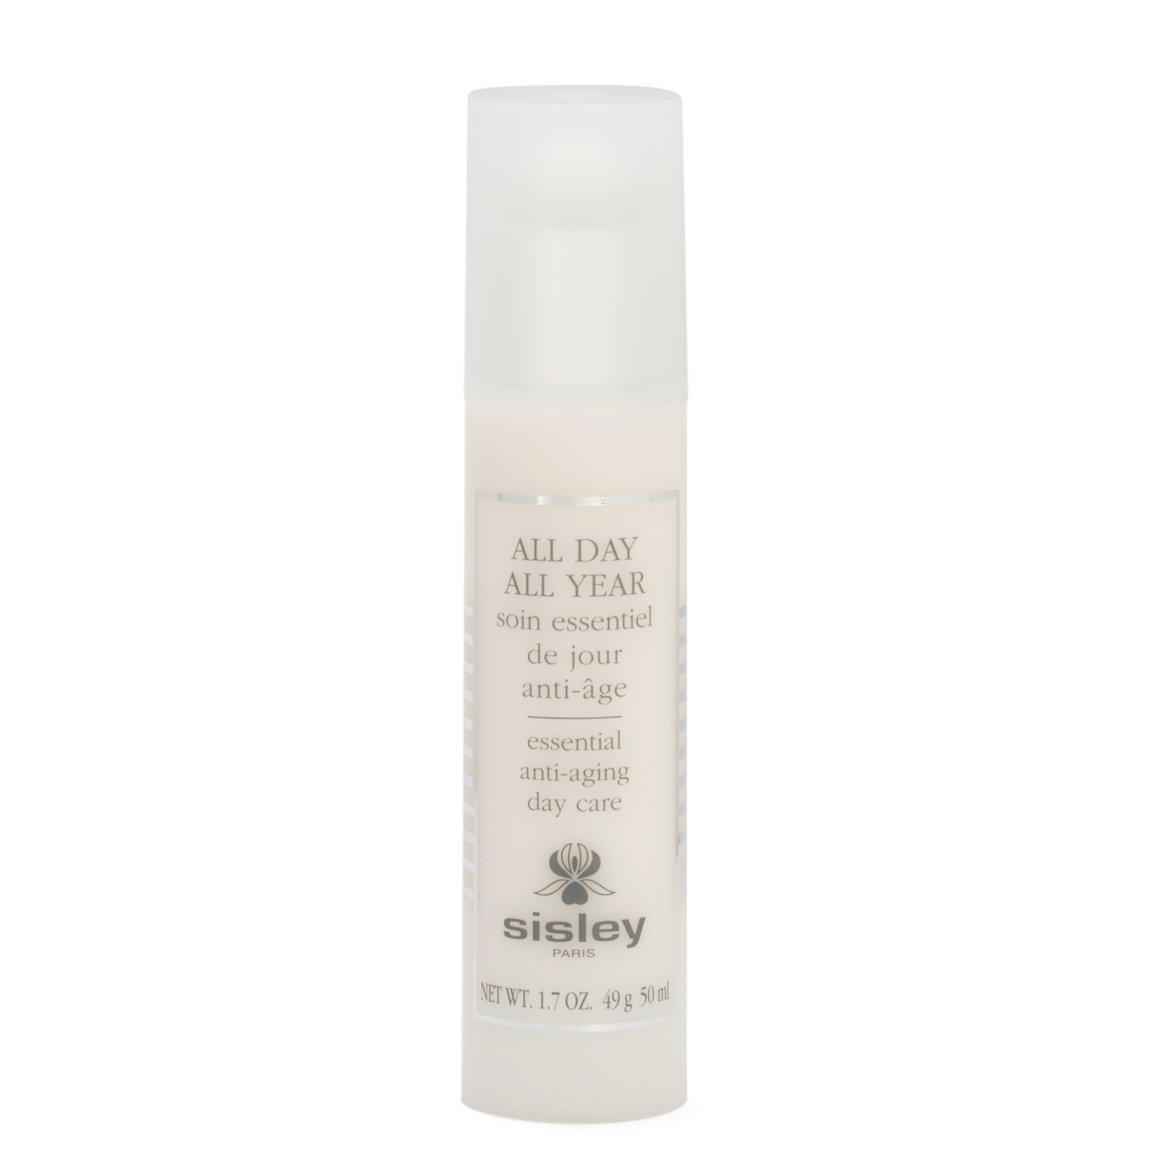 Sisley-Paris All Day All Year product smear.